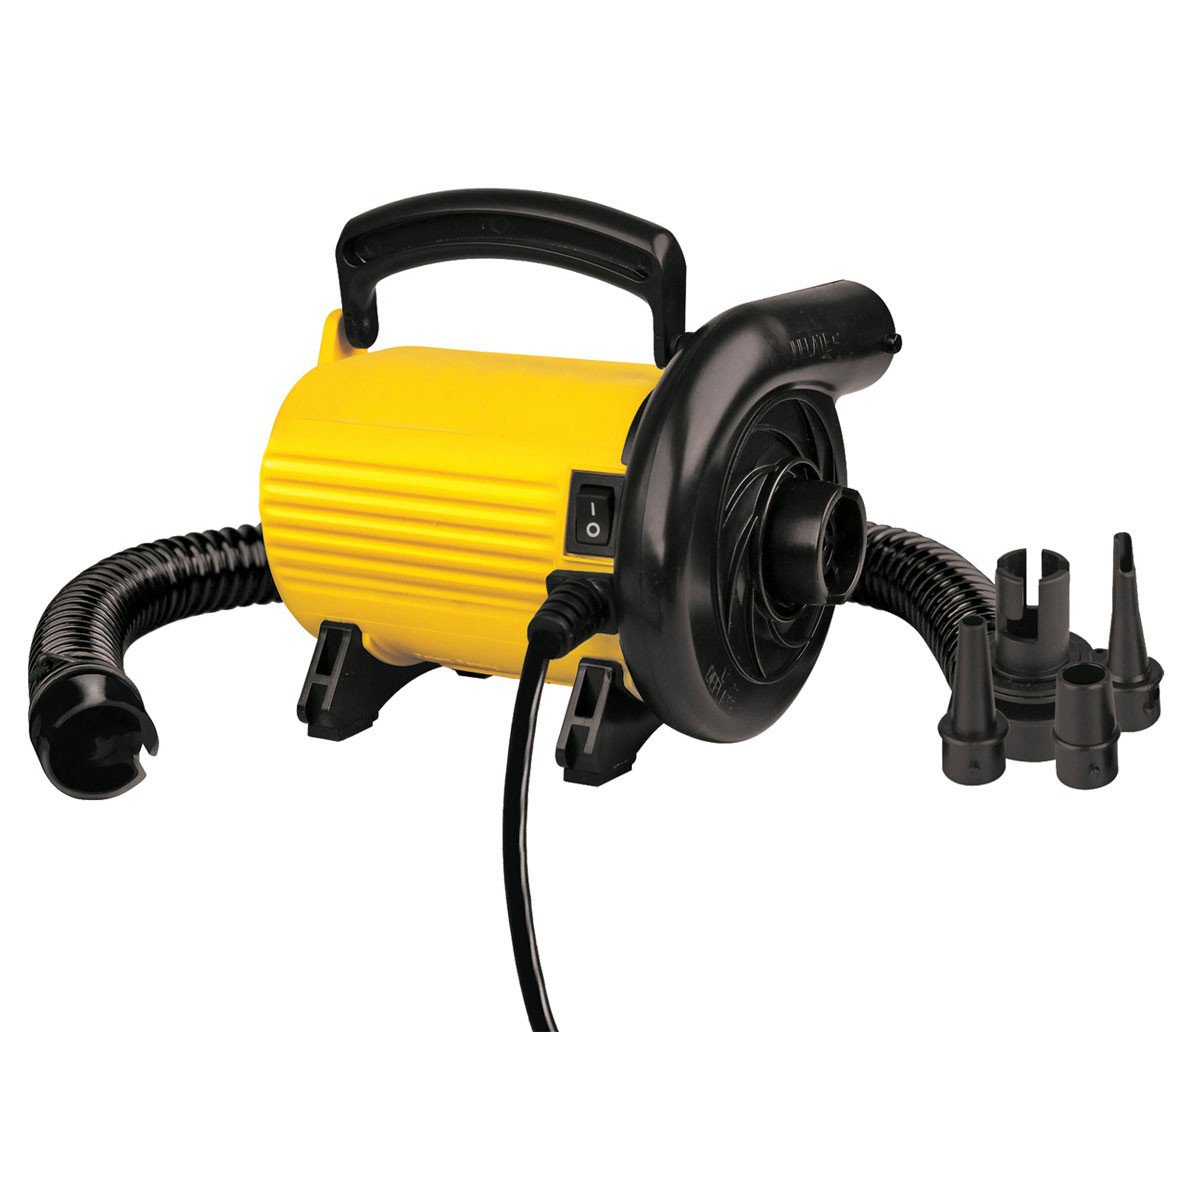 SportsStuff 2.5 PSI 110V Electric Pump for Towables and Inflatables 57-1509 by Kwik Tek